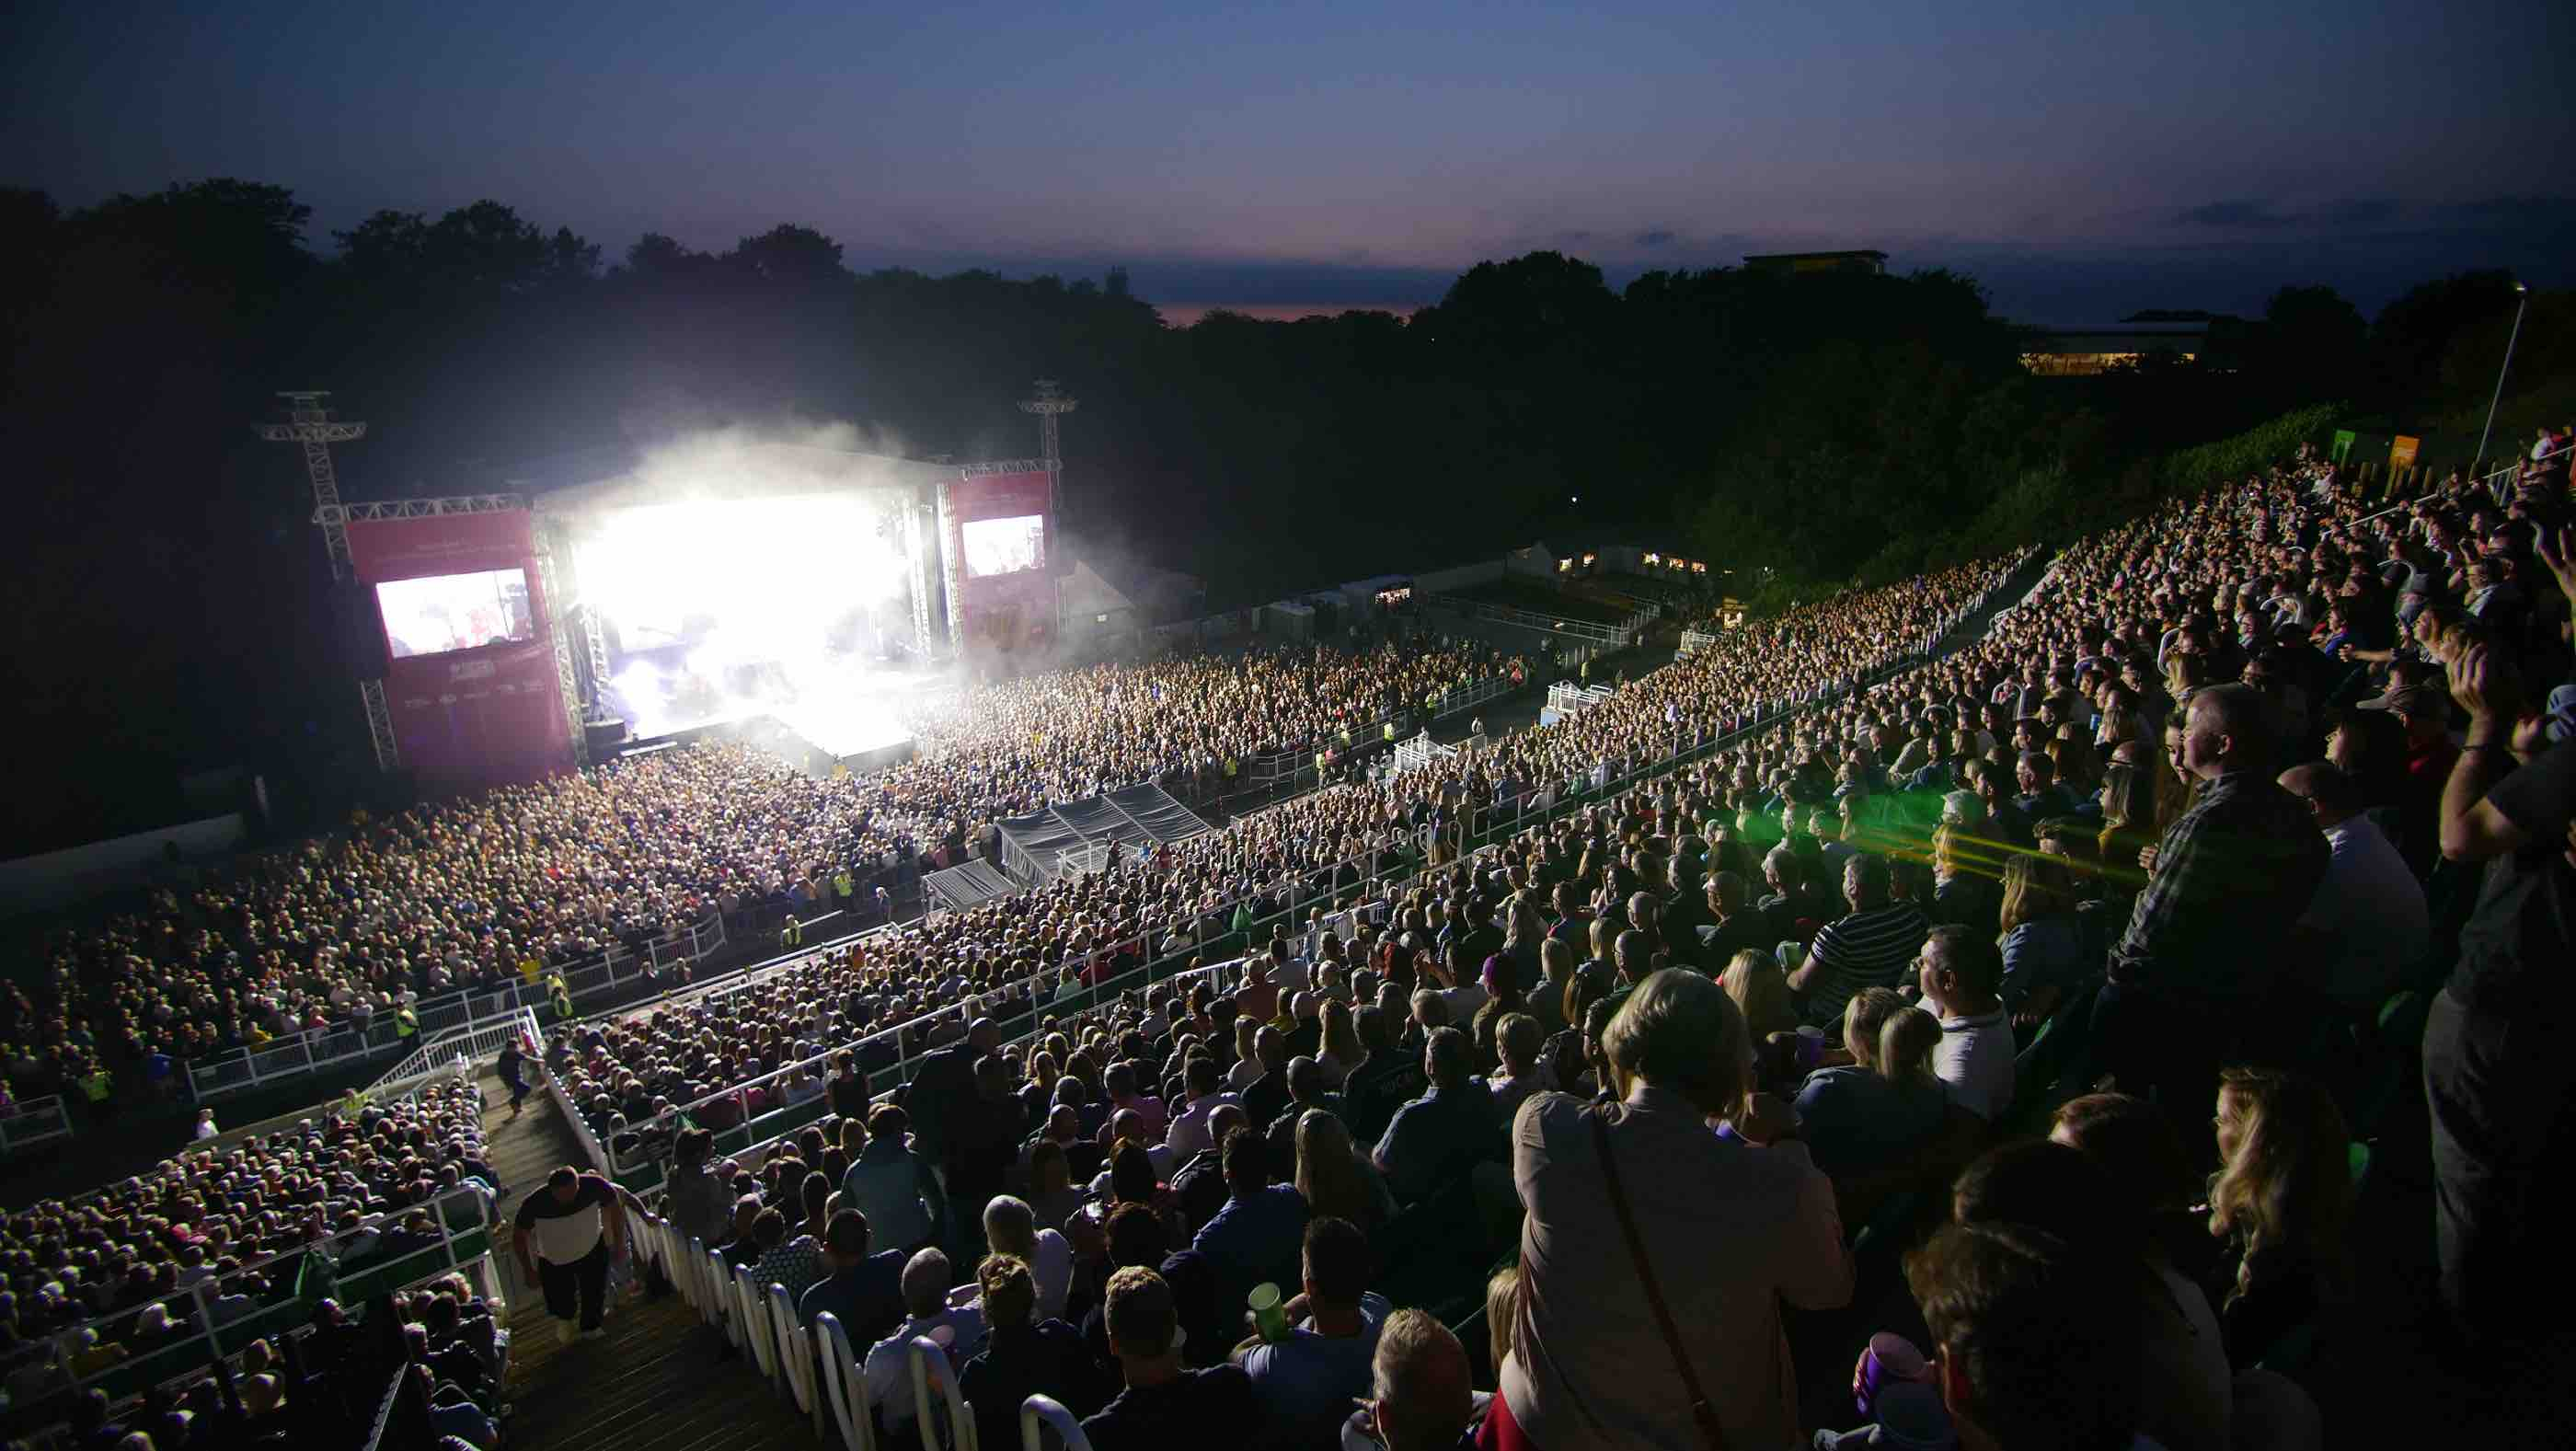 JAMES ARTHUR'S SCARBOROUGH OPEN AIR THEATRE SHOW RESCHEDULED FOR AUGUST 12